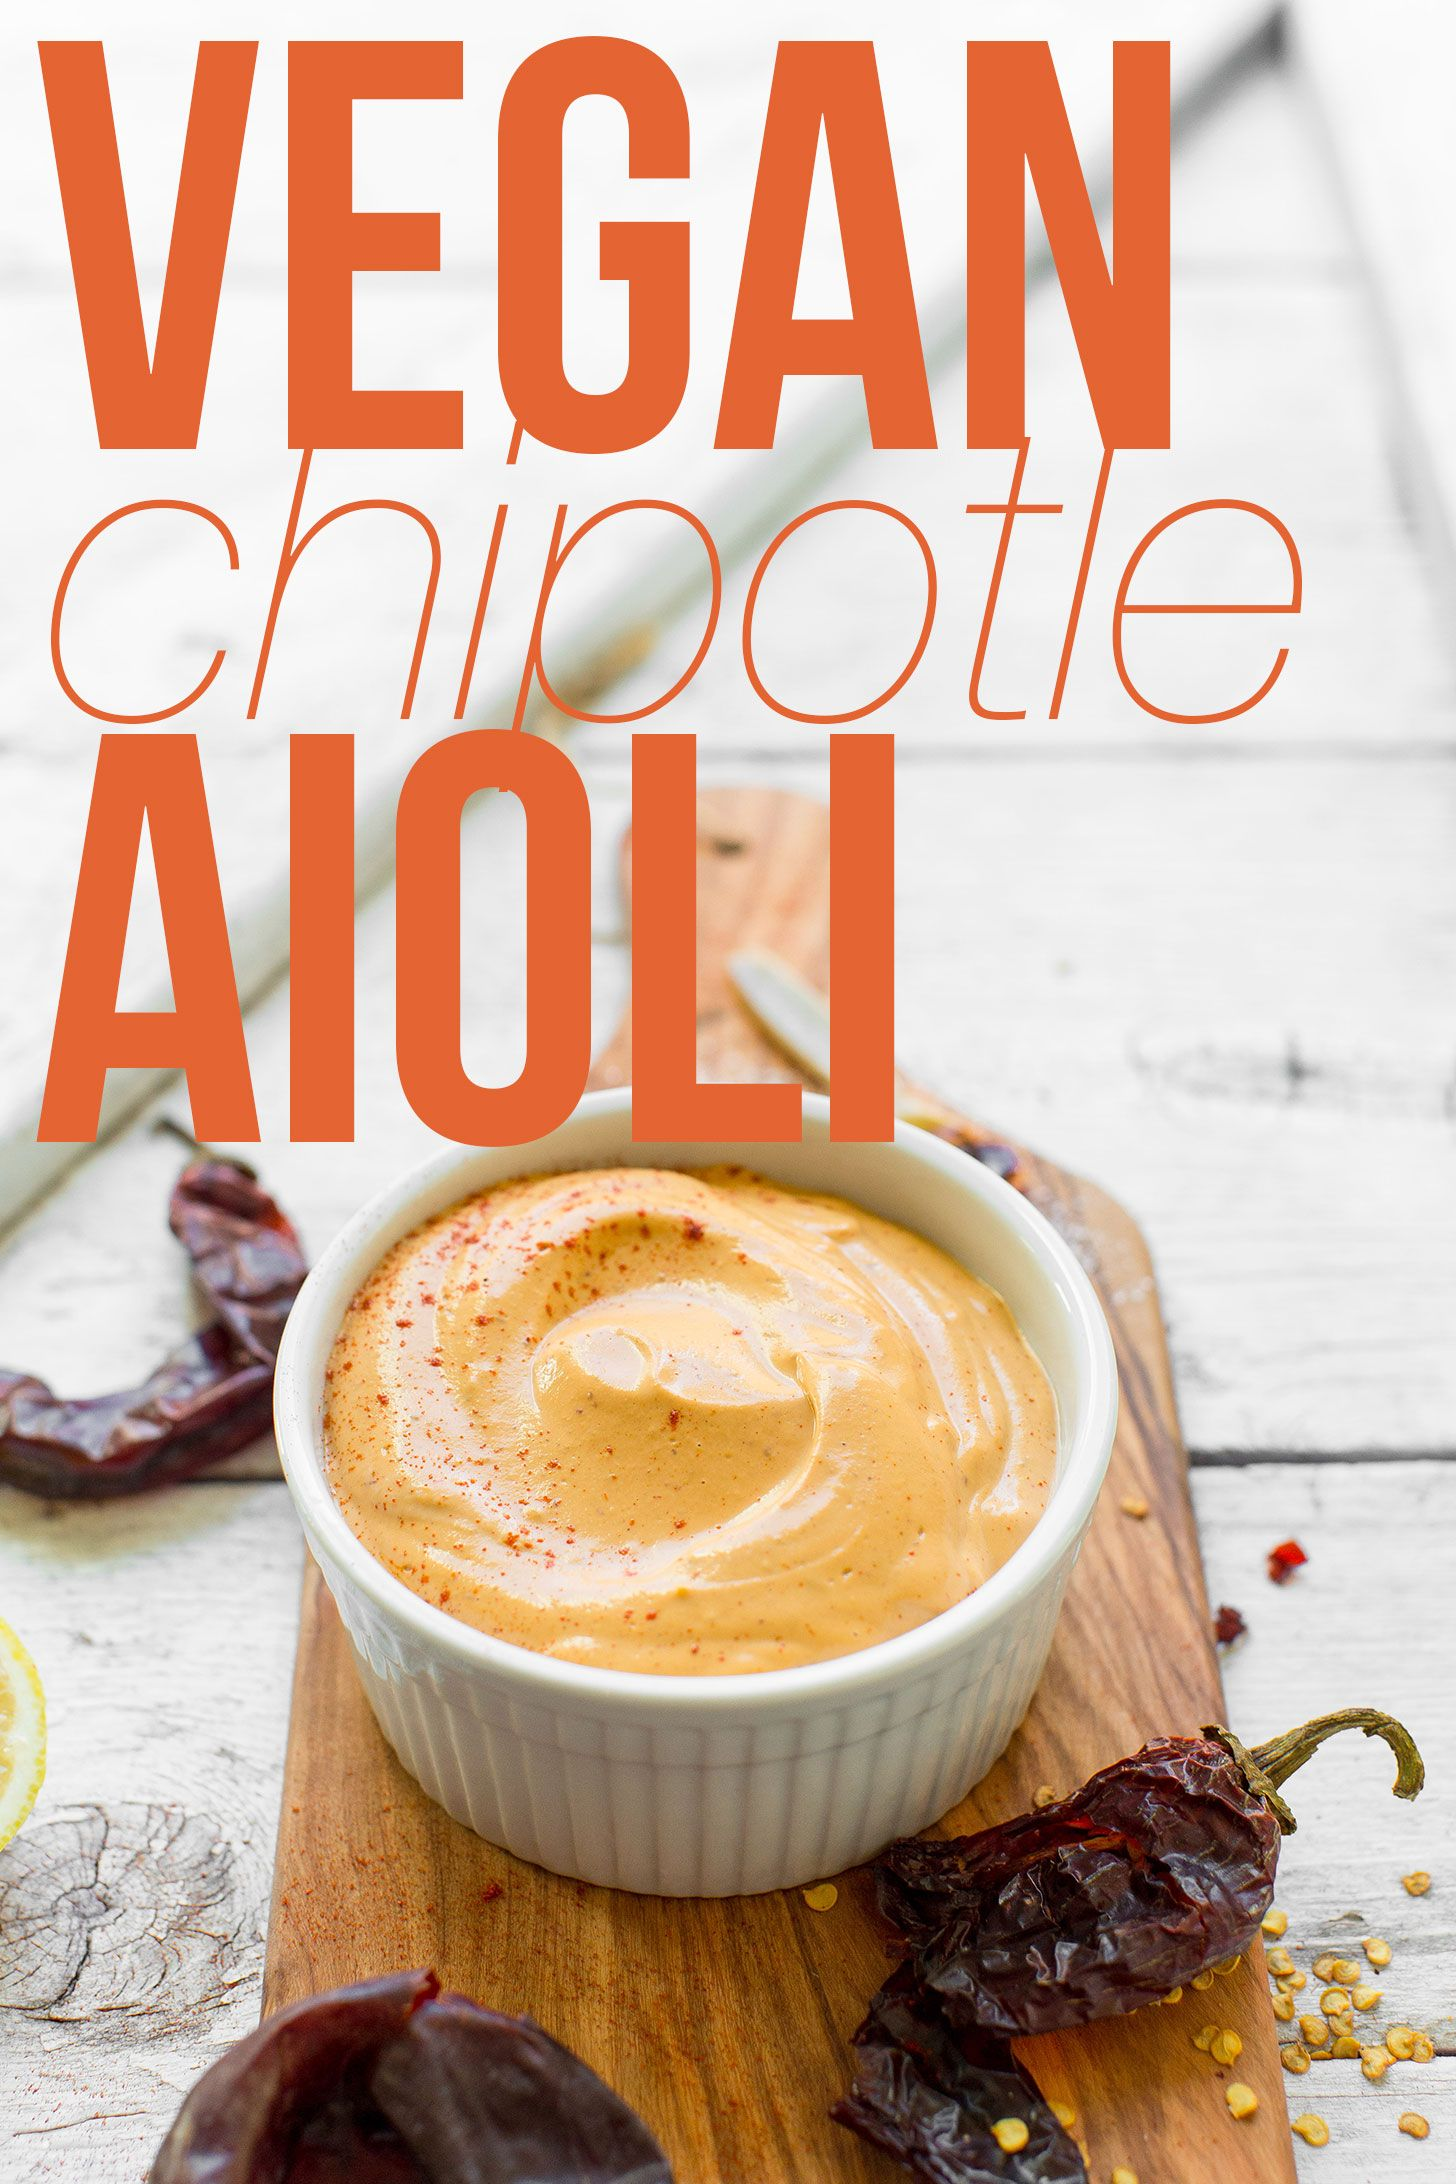 5 Ingredient Chipotle Aioli